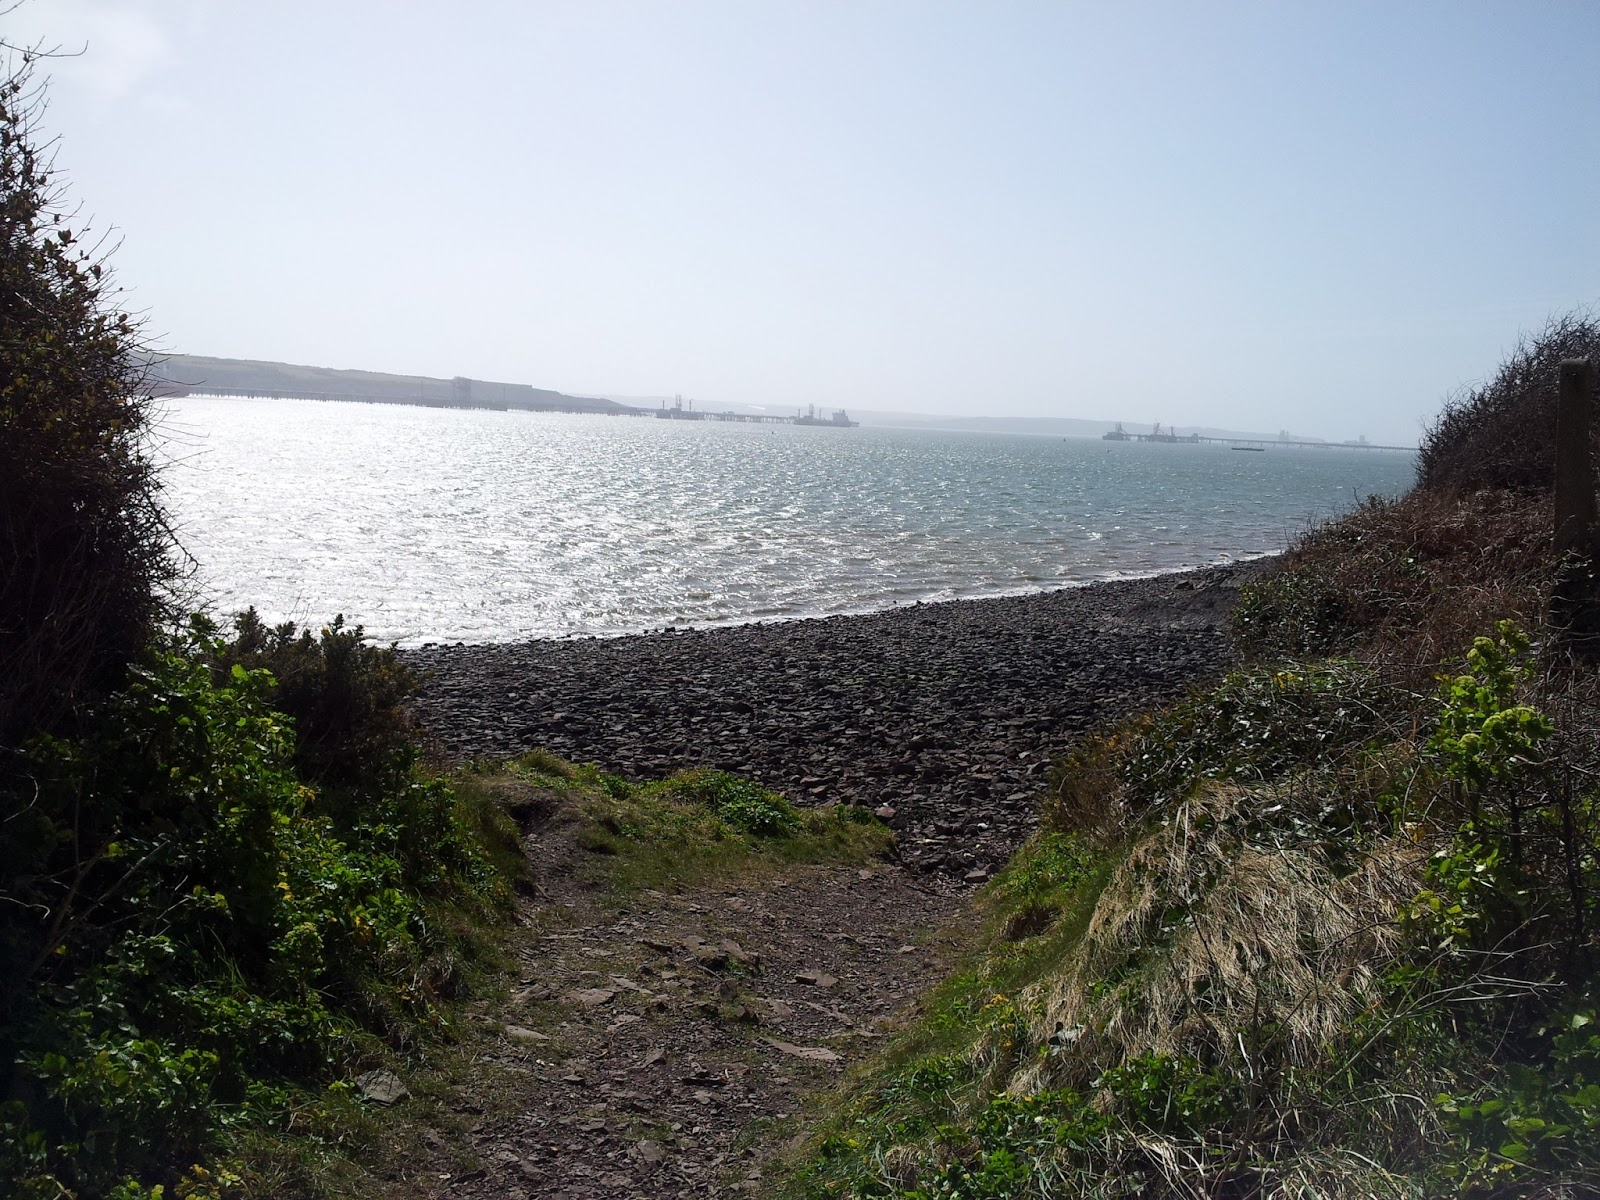 Docks to Rath walk Milford Haven Scotch Bay